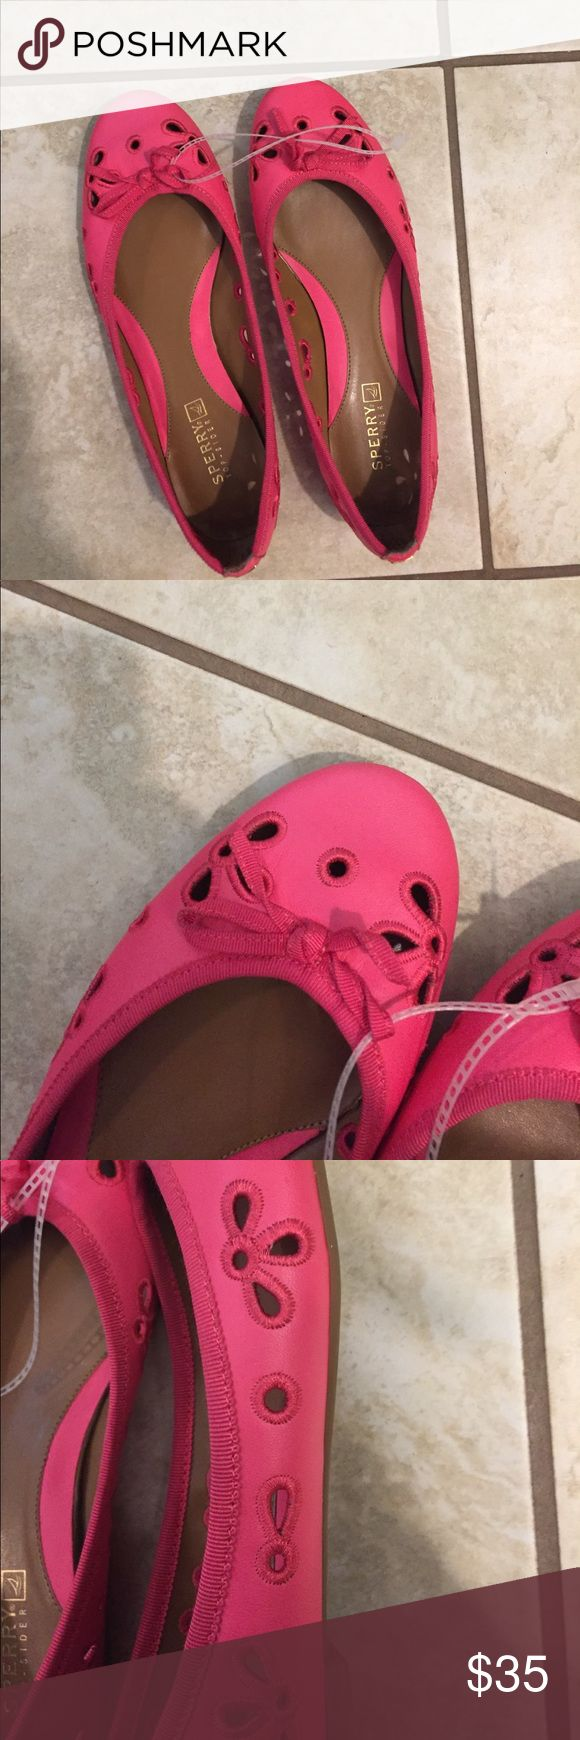 Pink sperry flats Pink Sperry flats. Never worn. Super comfortable. Sperry Shoes Flats & Loafers